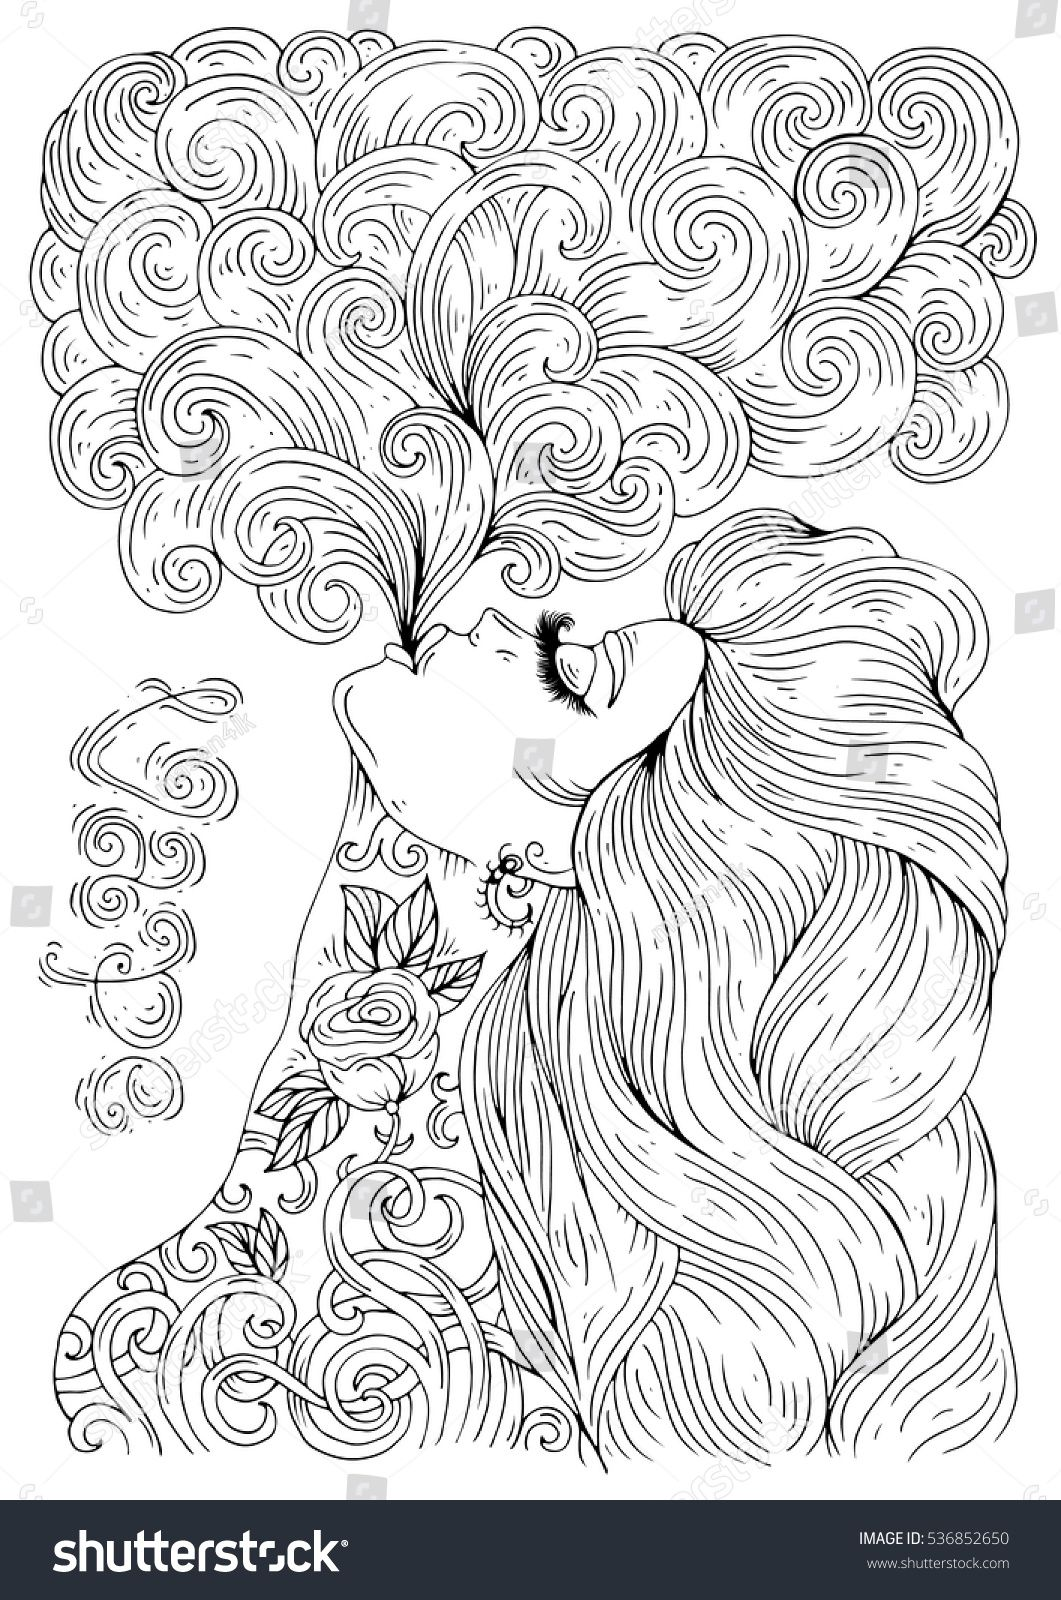 Top 25 Free Printable Dragon Coloring Pages Online | Dragon ... | 1600x1061